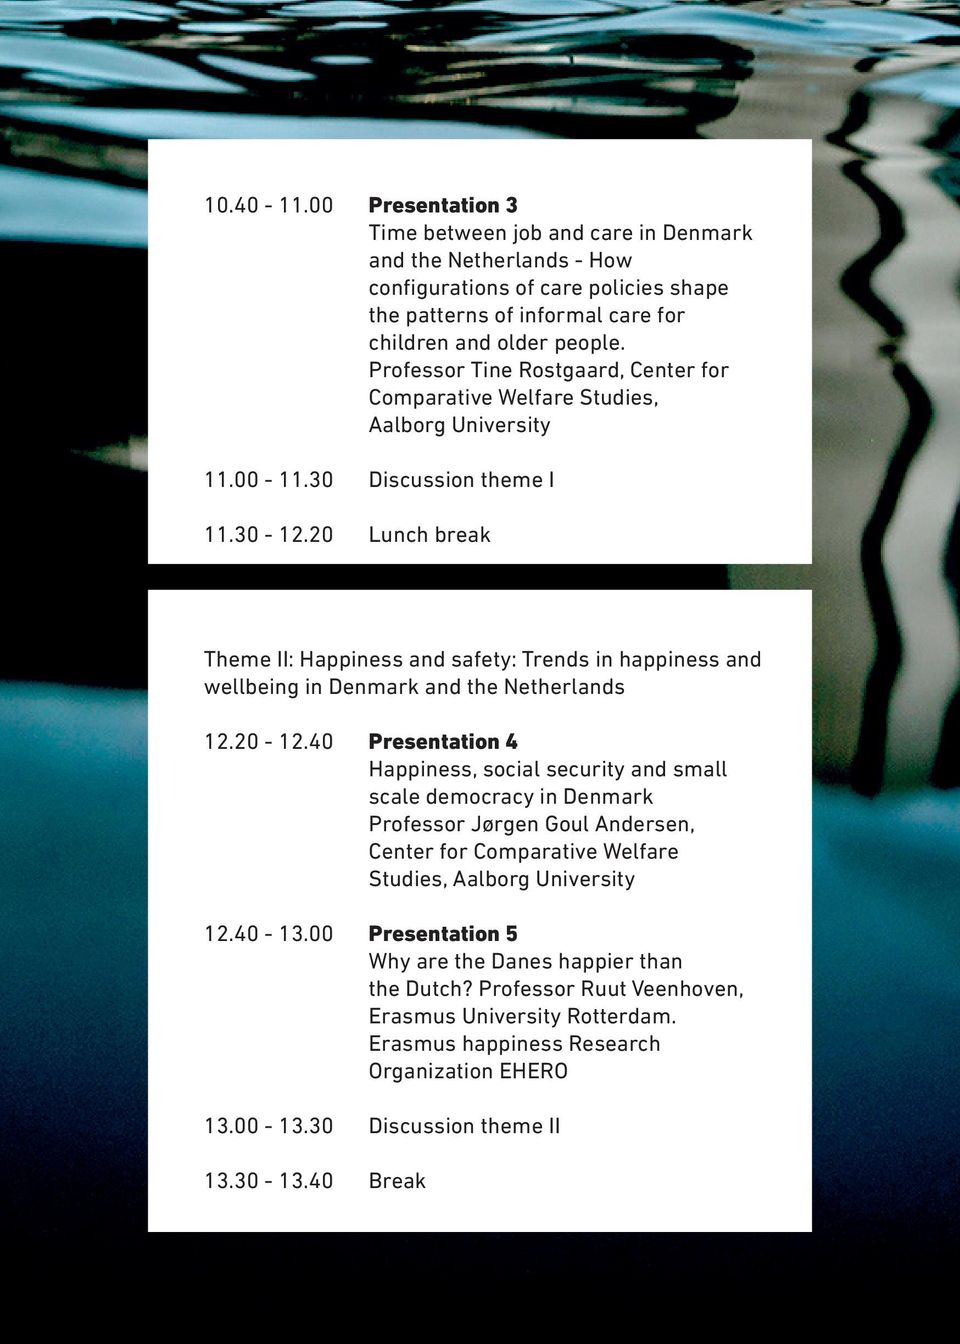 20 Lunch break Theme II: Happiness and safety: Trends in happiness and wellbeing in Denmark and the Netherlands 12.20-12.